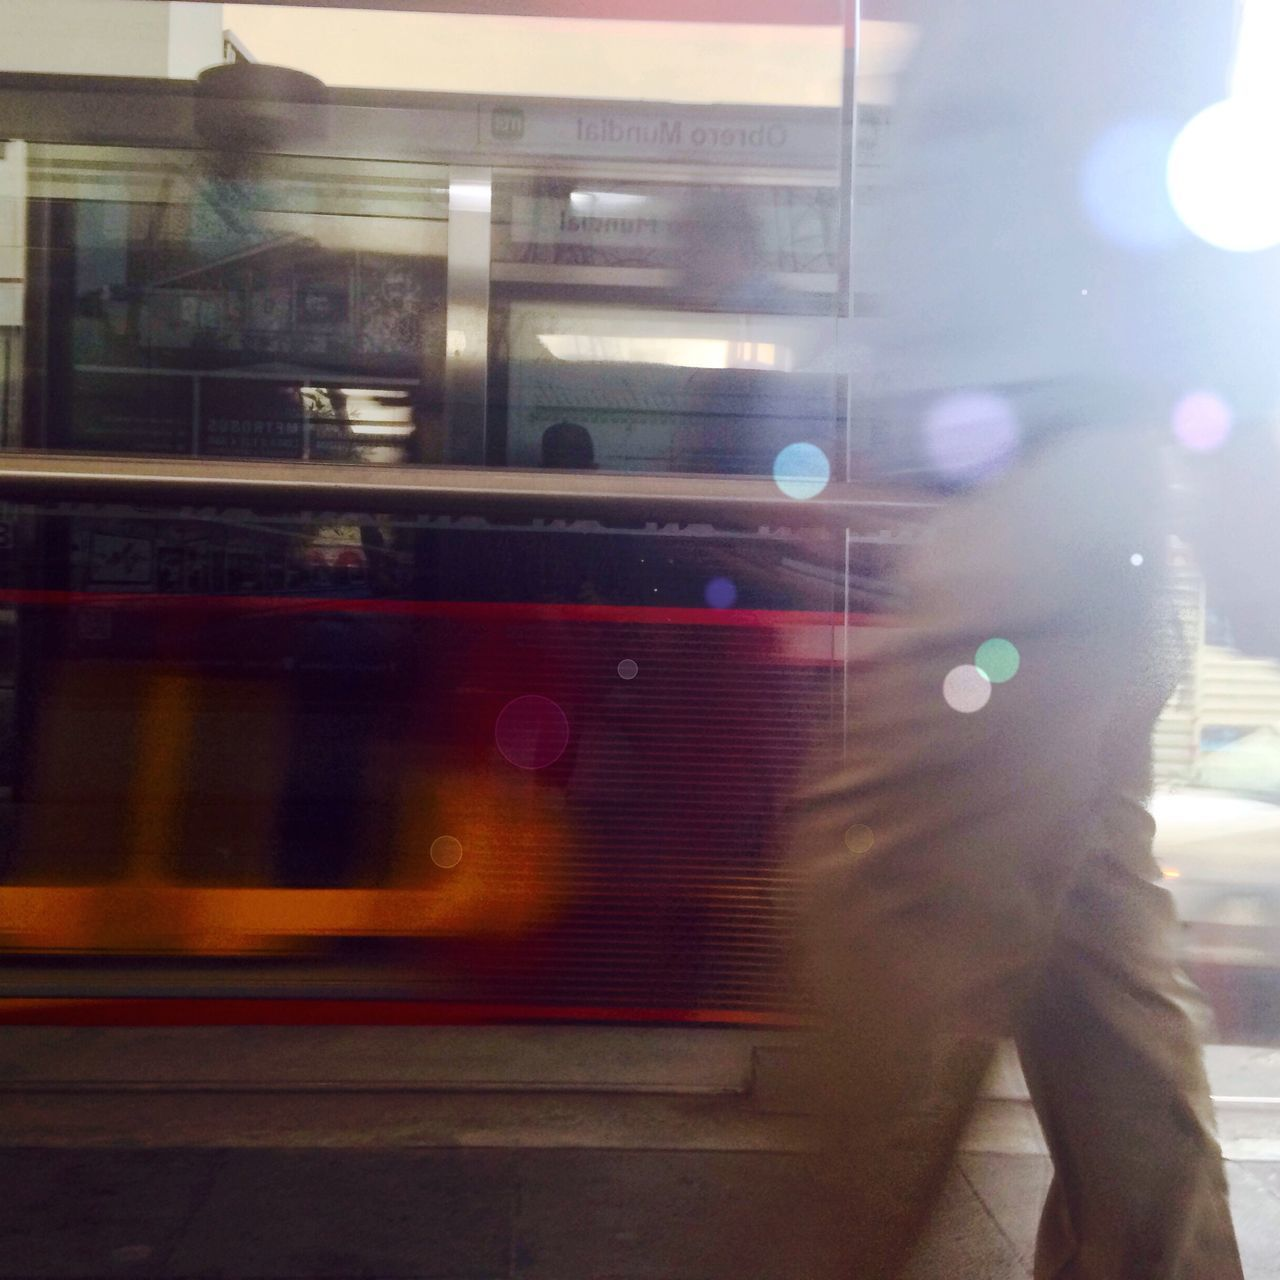 blurred motion, transportation, mode of transport, public transportation, lens flare, speed, motion, train - vehicle, one person, street, real people, land vehicle, men, outdoors, illuminated, day, people